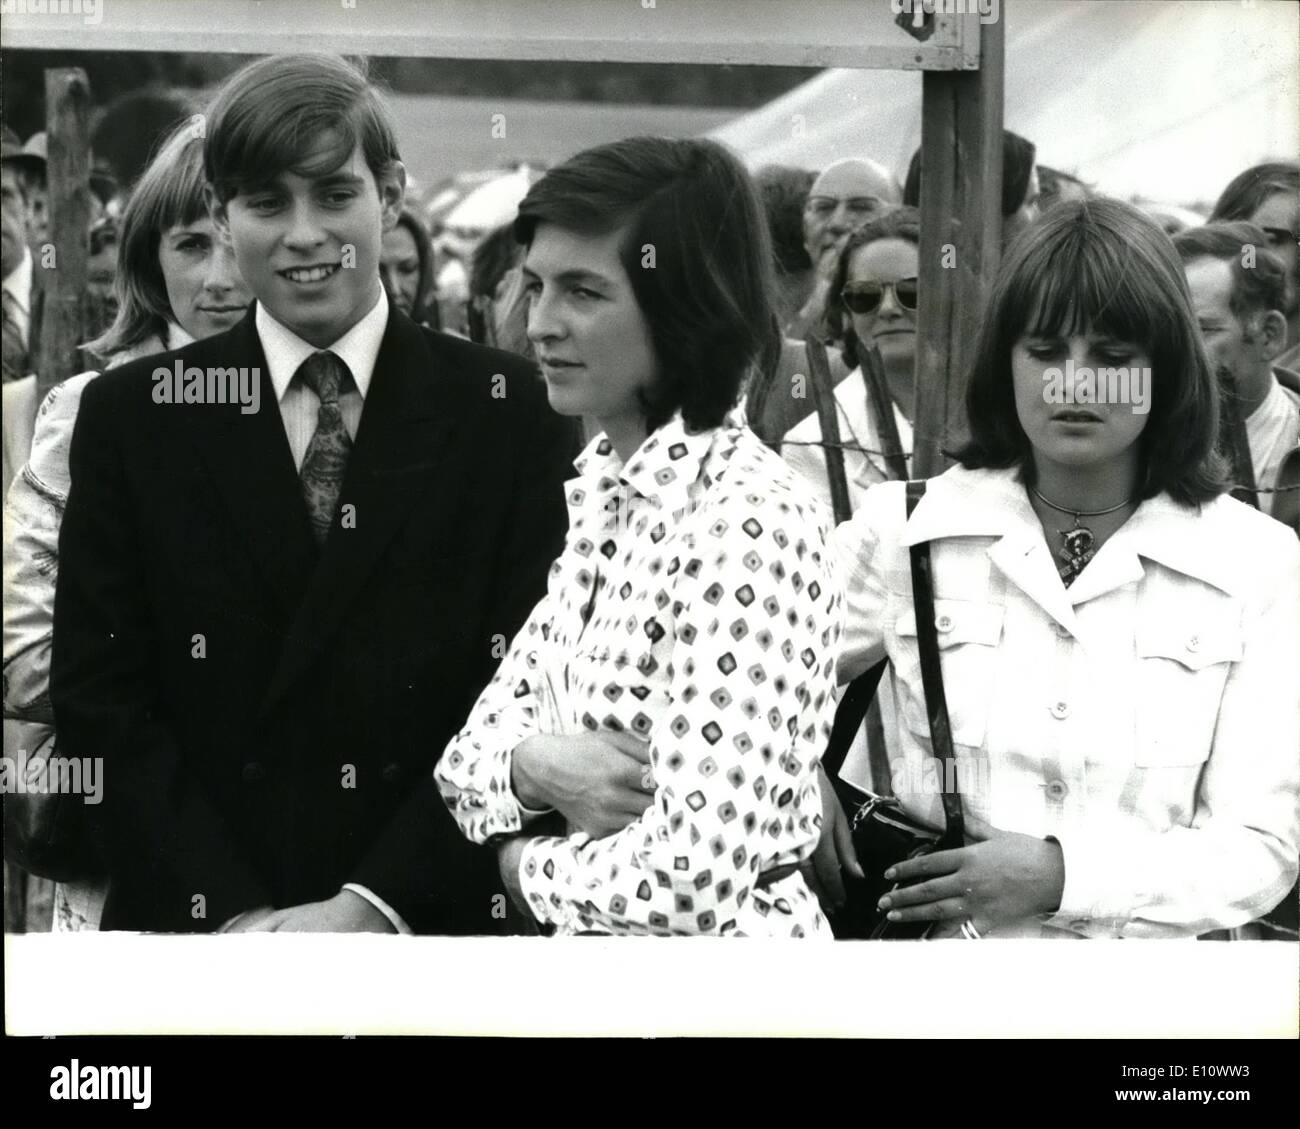 Jul. 07, 1974 - The royal Family Visit The Country Home Of The Duke of Wellington To Attend A Game Fair: The Queen and Prince Philip with Prince Andrew and Prince Edward today paid a visit to Straffied says the Duke of Wellington's Country home after wear Rebnidng, Berks., where they attended a Game Fair. They launched privately with an Lady Jane Welislely whose home was has been linked romantically with Prince Charles, her parents, the Duke and Duchess of Wellington, and her four brothers in a marquee at the Game Fair in the grounds of the Wellington's 6,000-acre estate - Stock Image